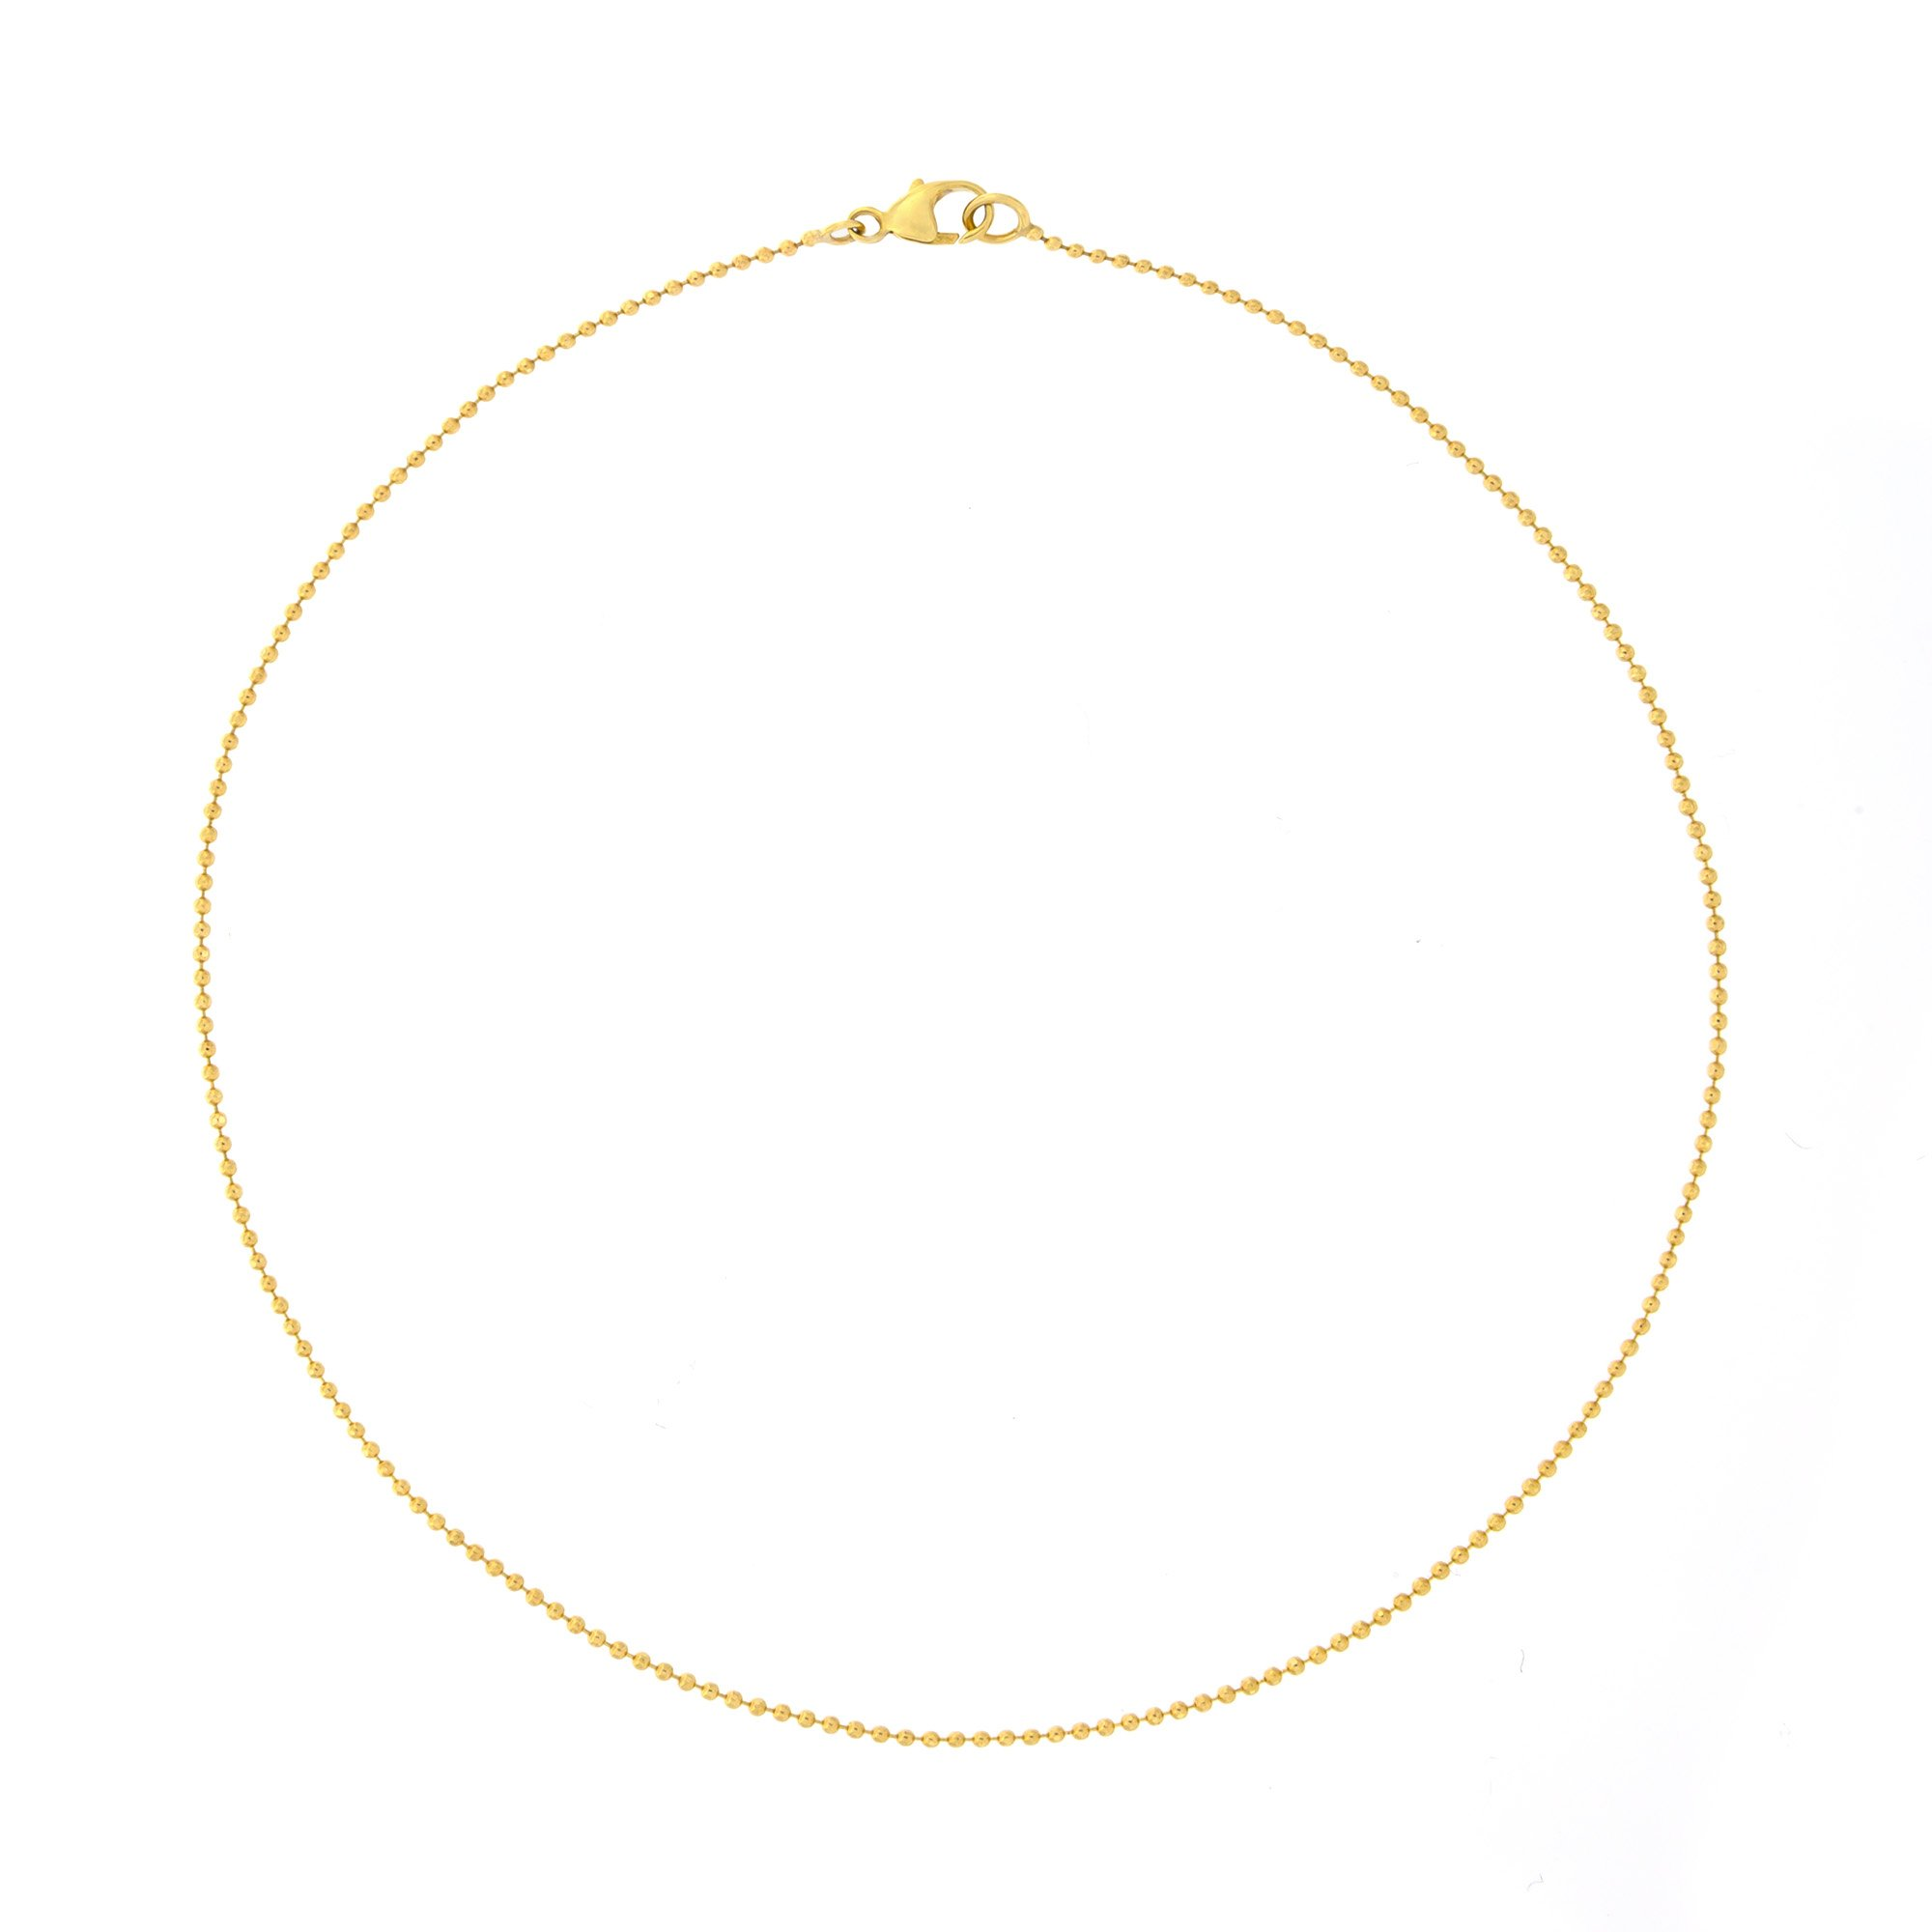 Automic Gold Solid 14k Yellow Gold Bead Choker Necklace, 15''